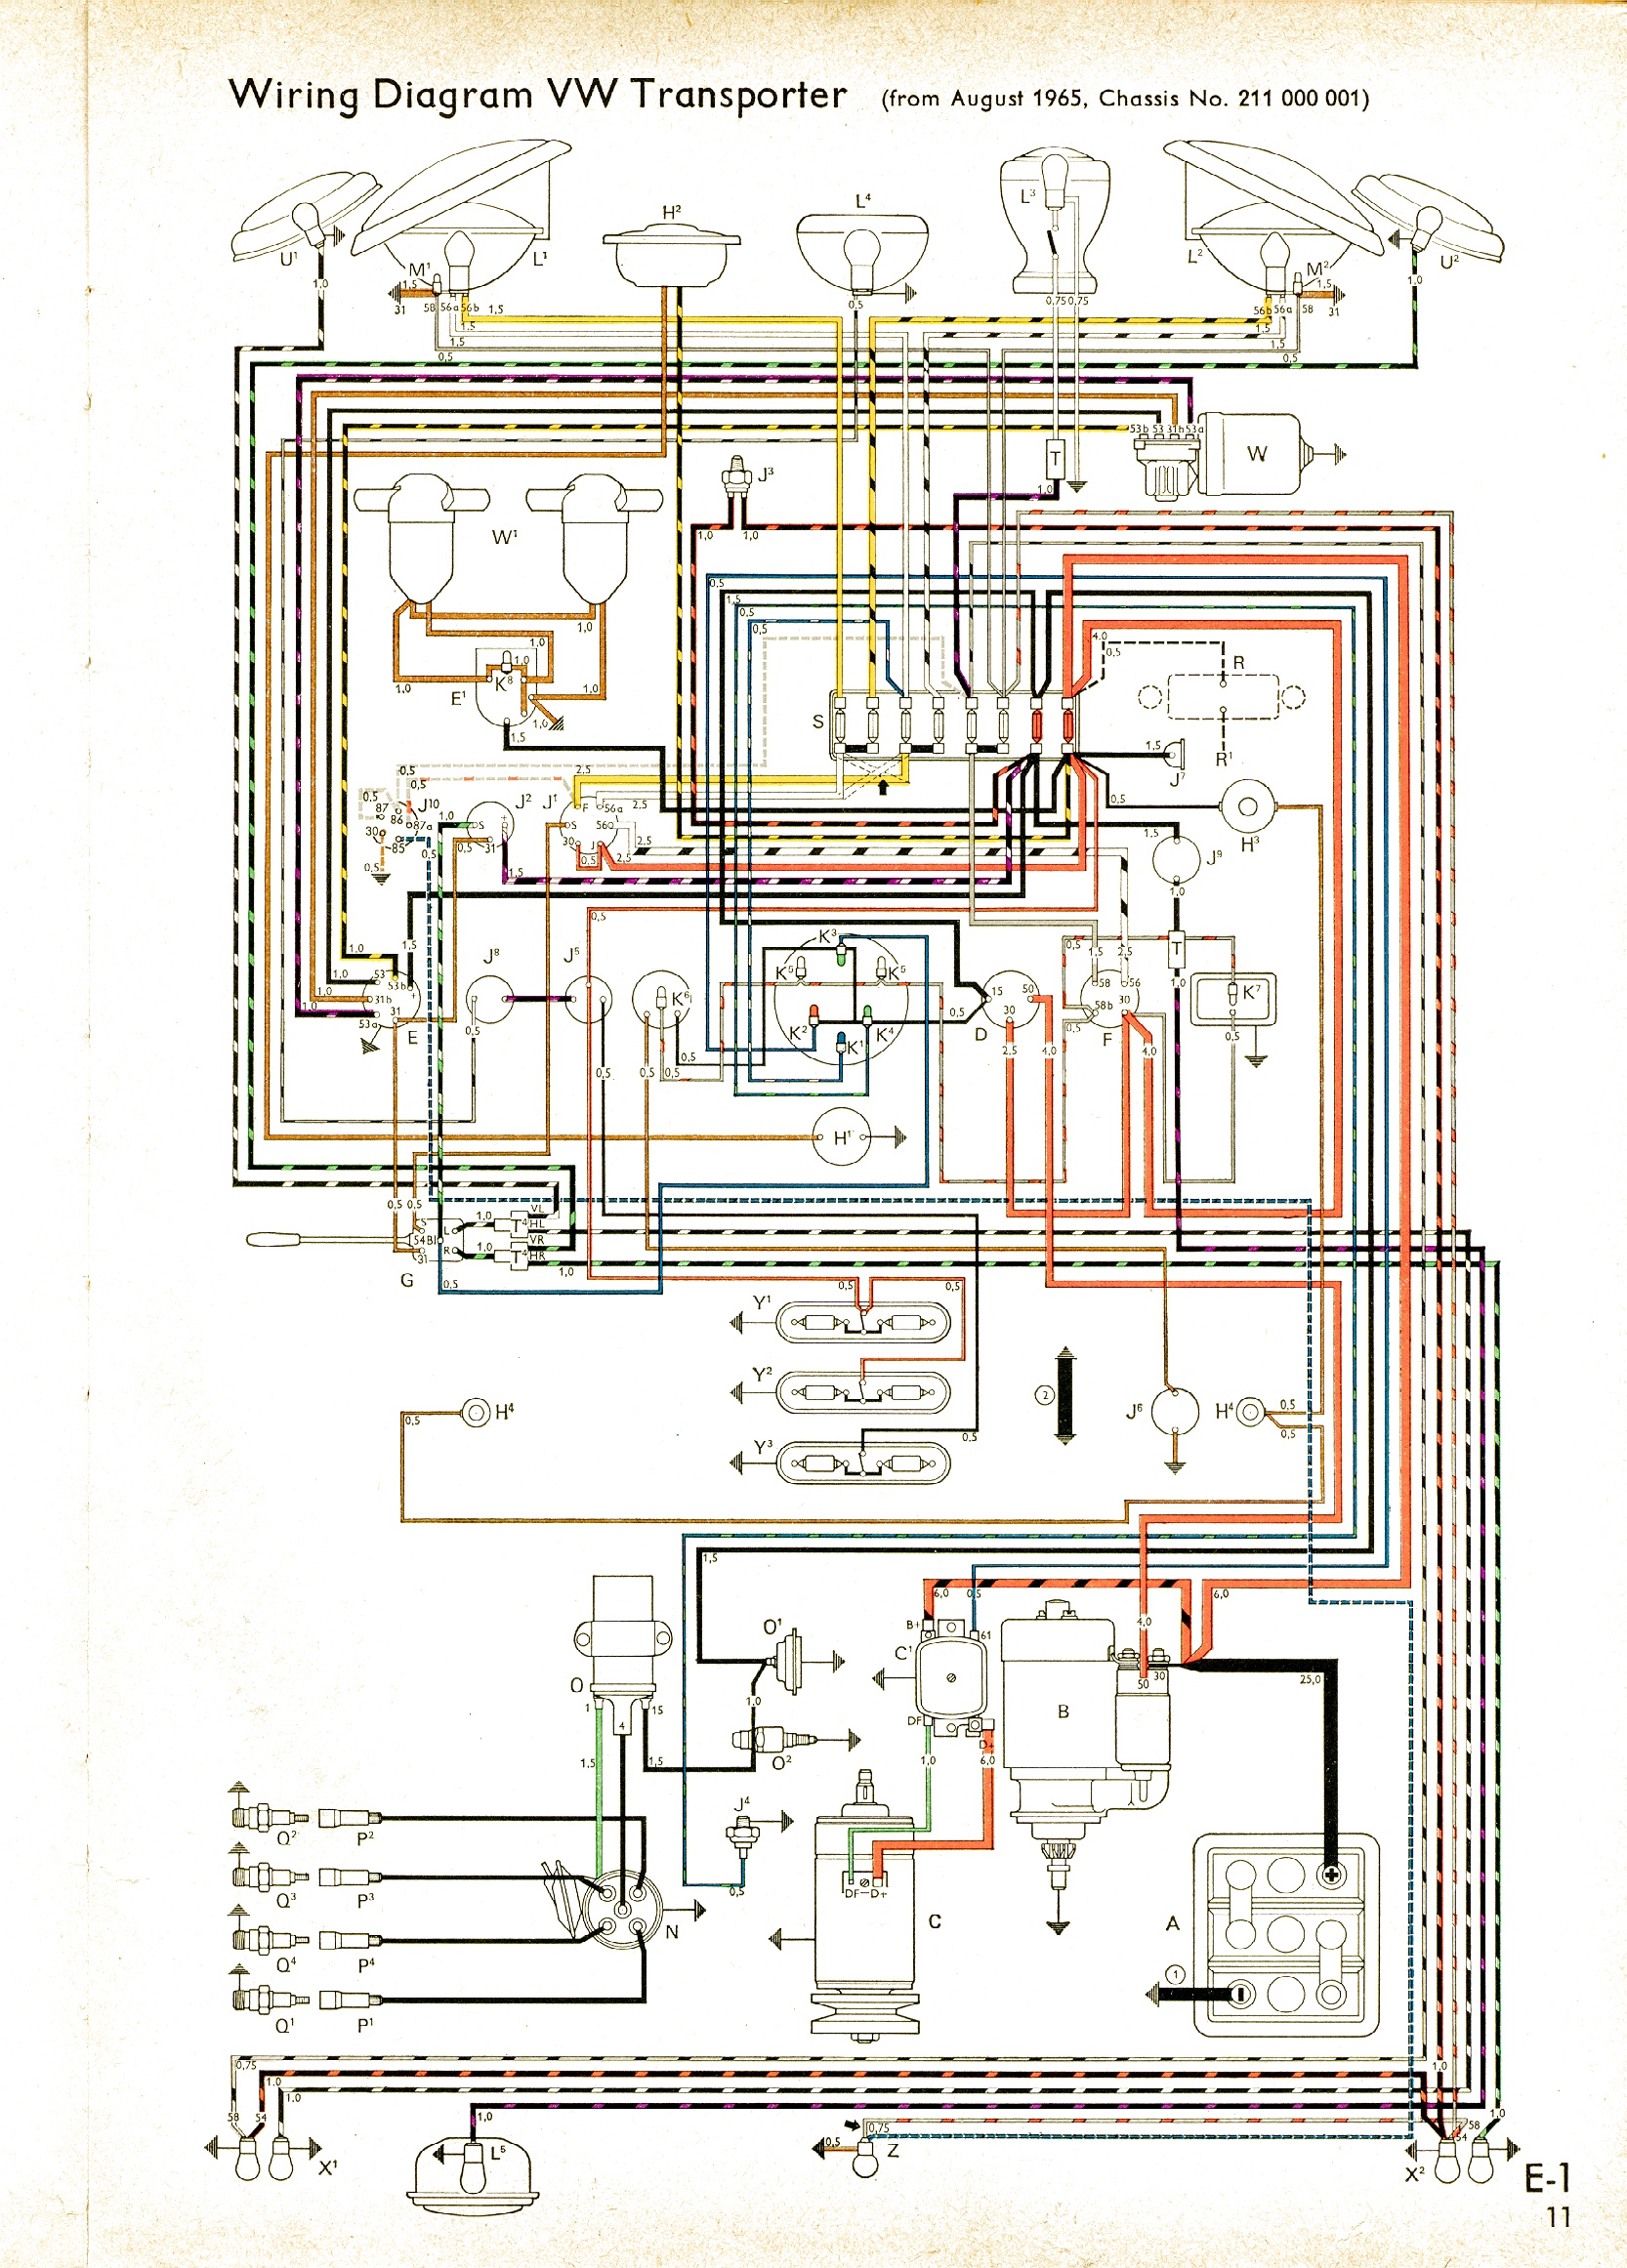 bus 65 vintagebus com vw bus (and other) wiring diagrams vw beetle 2002 radio wiring diagram at crackthecode.co